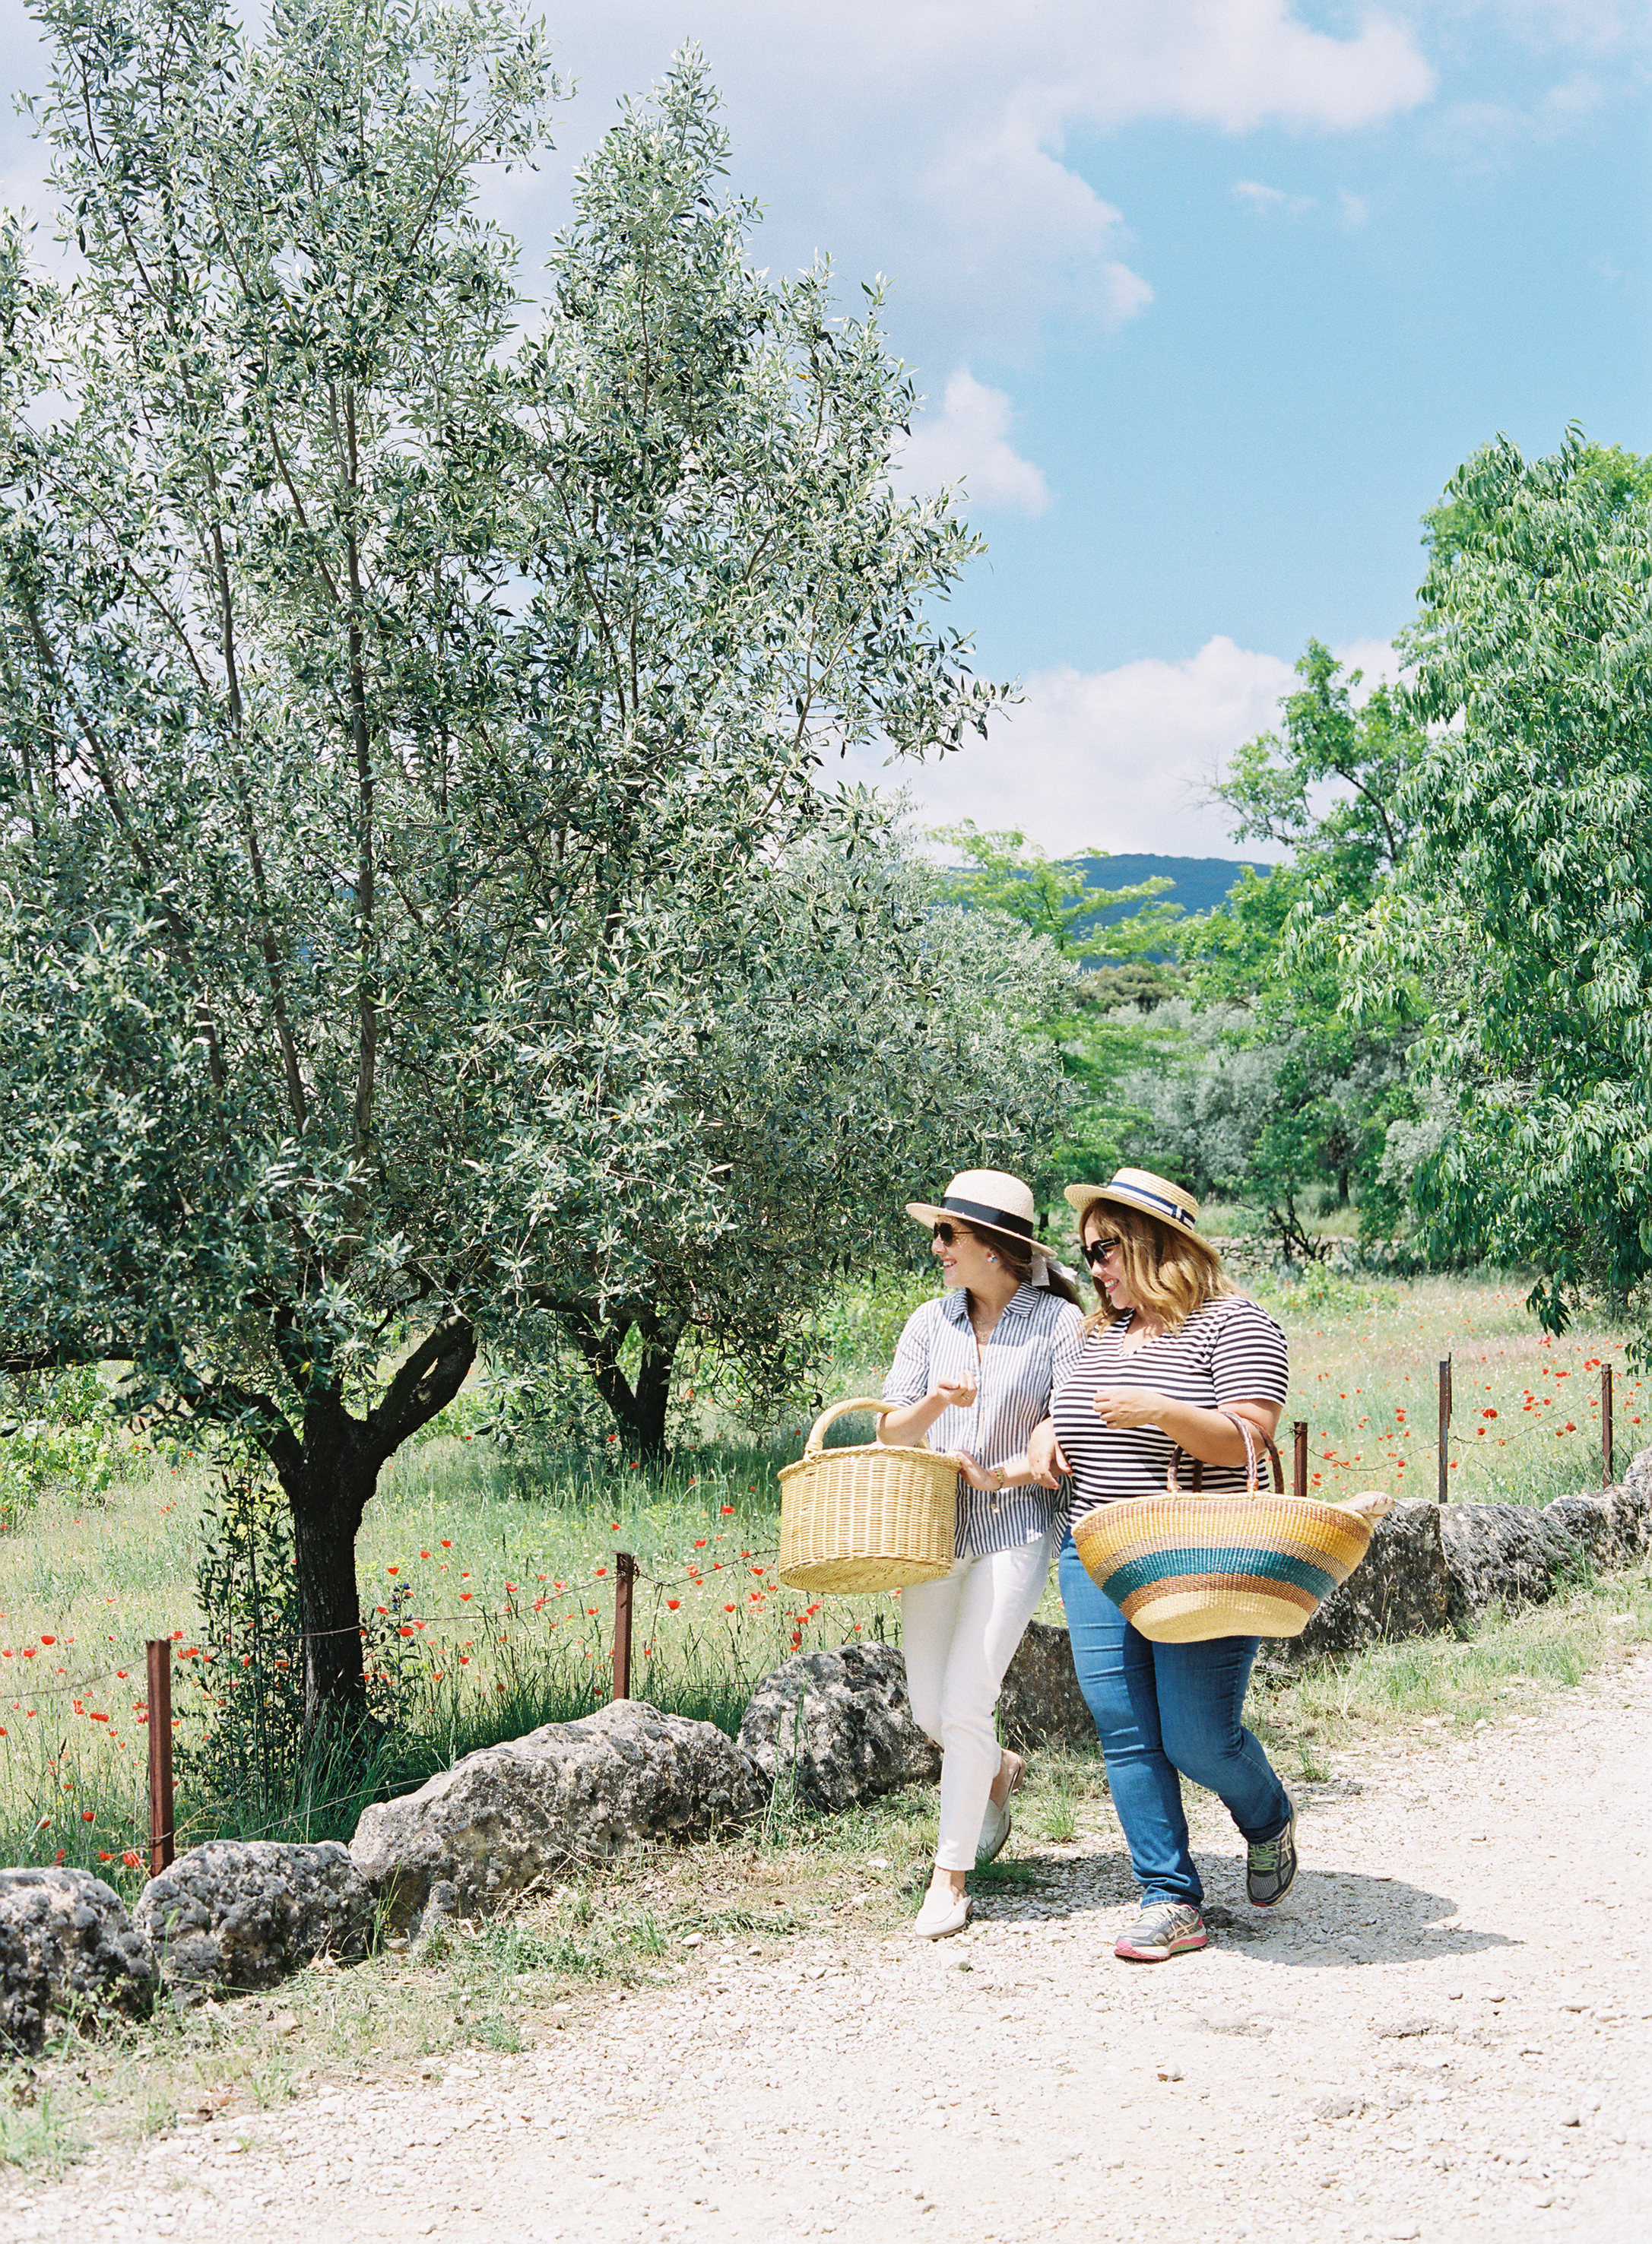 Picnicing in the Luberon